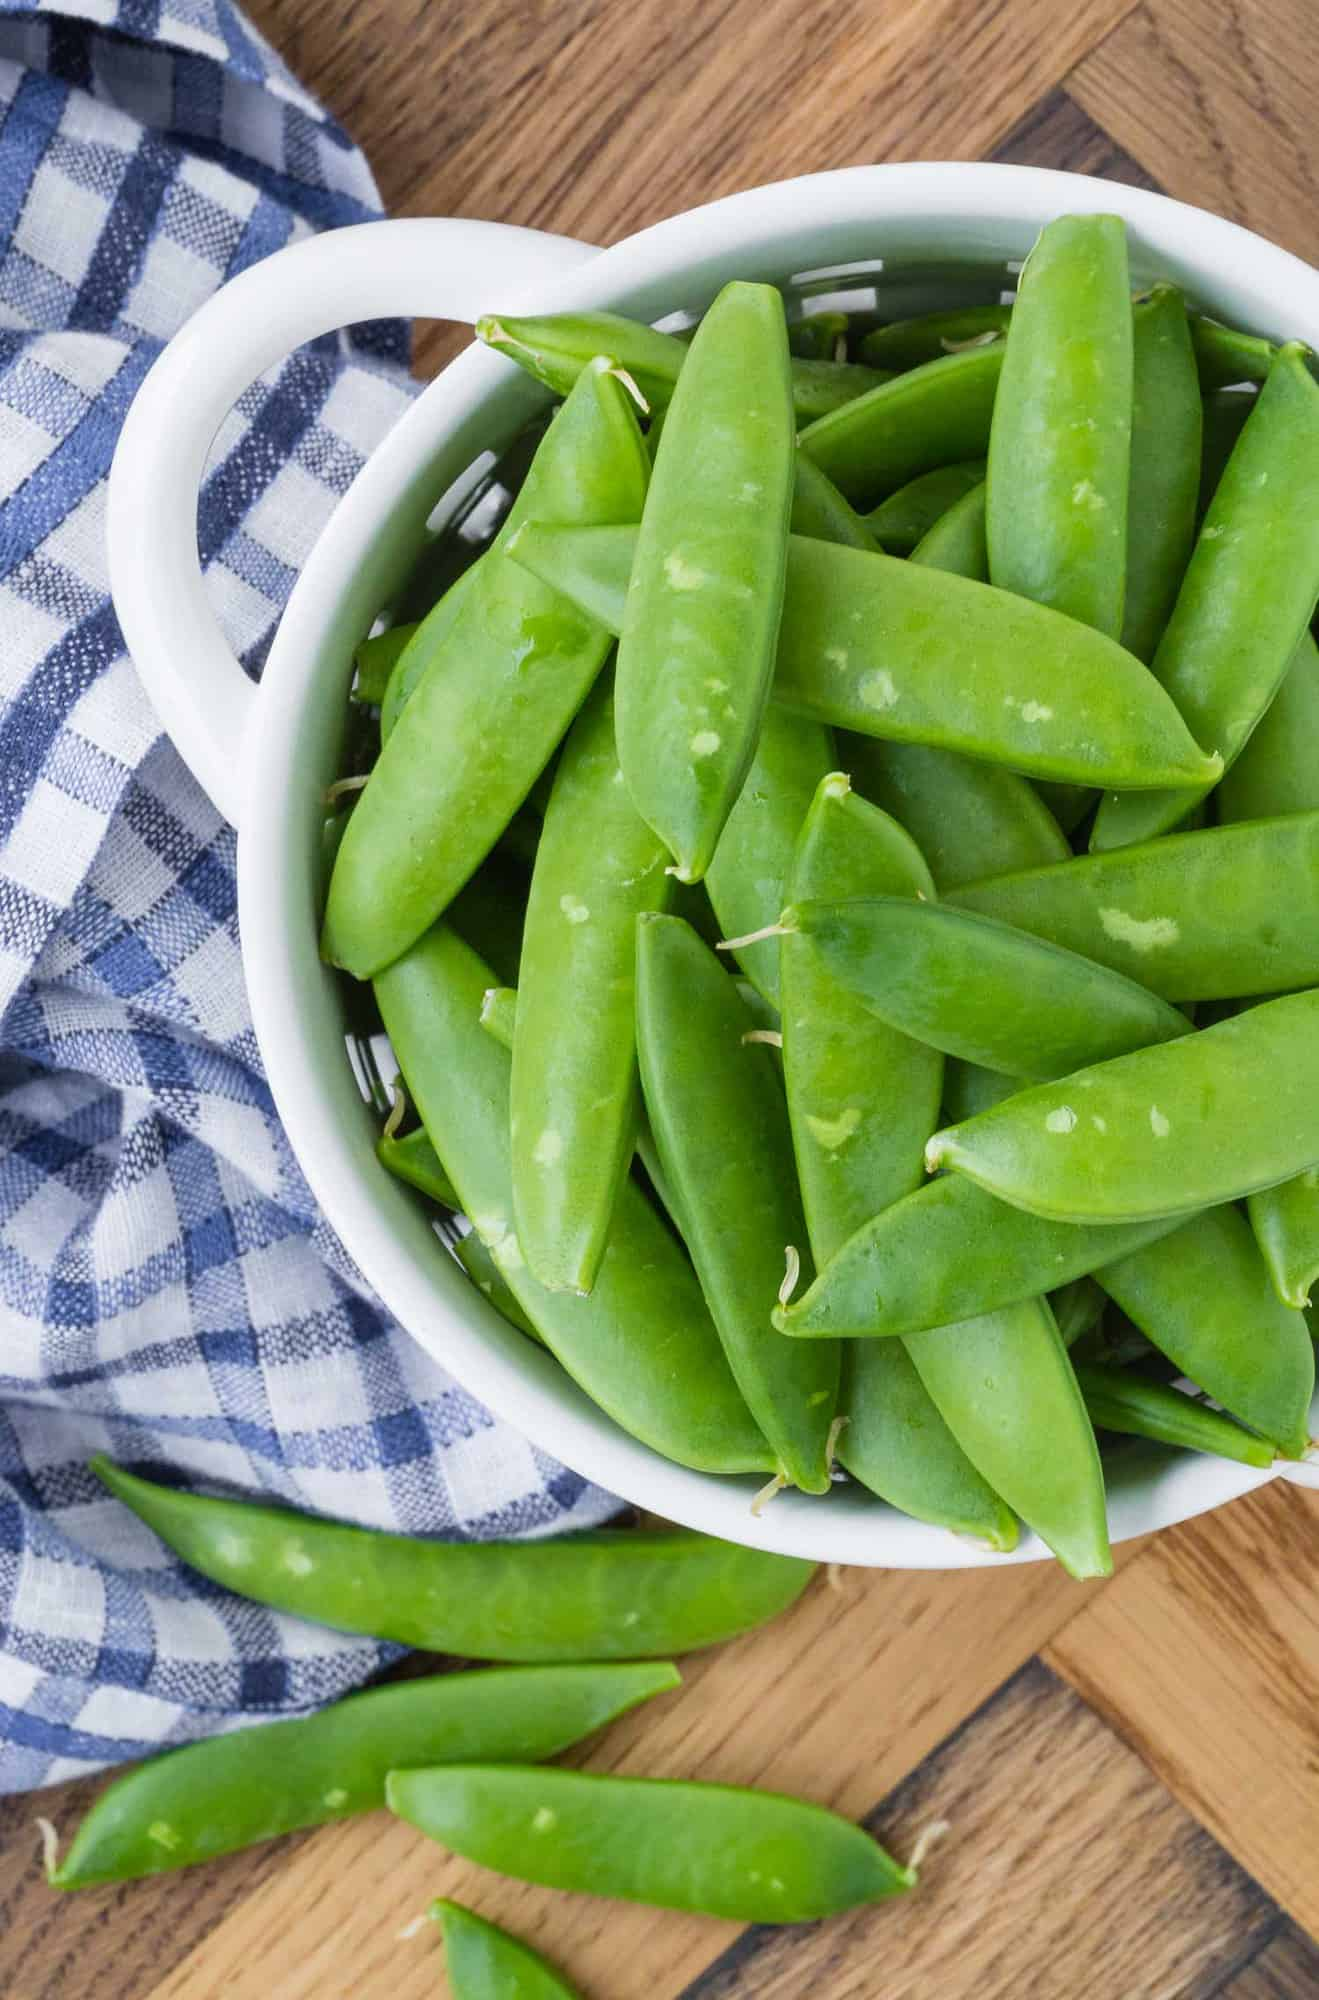 Overhead view of a small white strainer full of raw sugar snap peas.